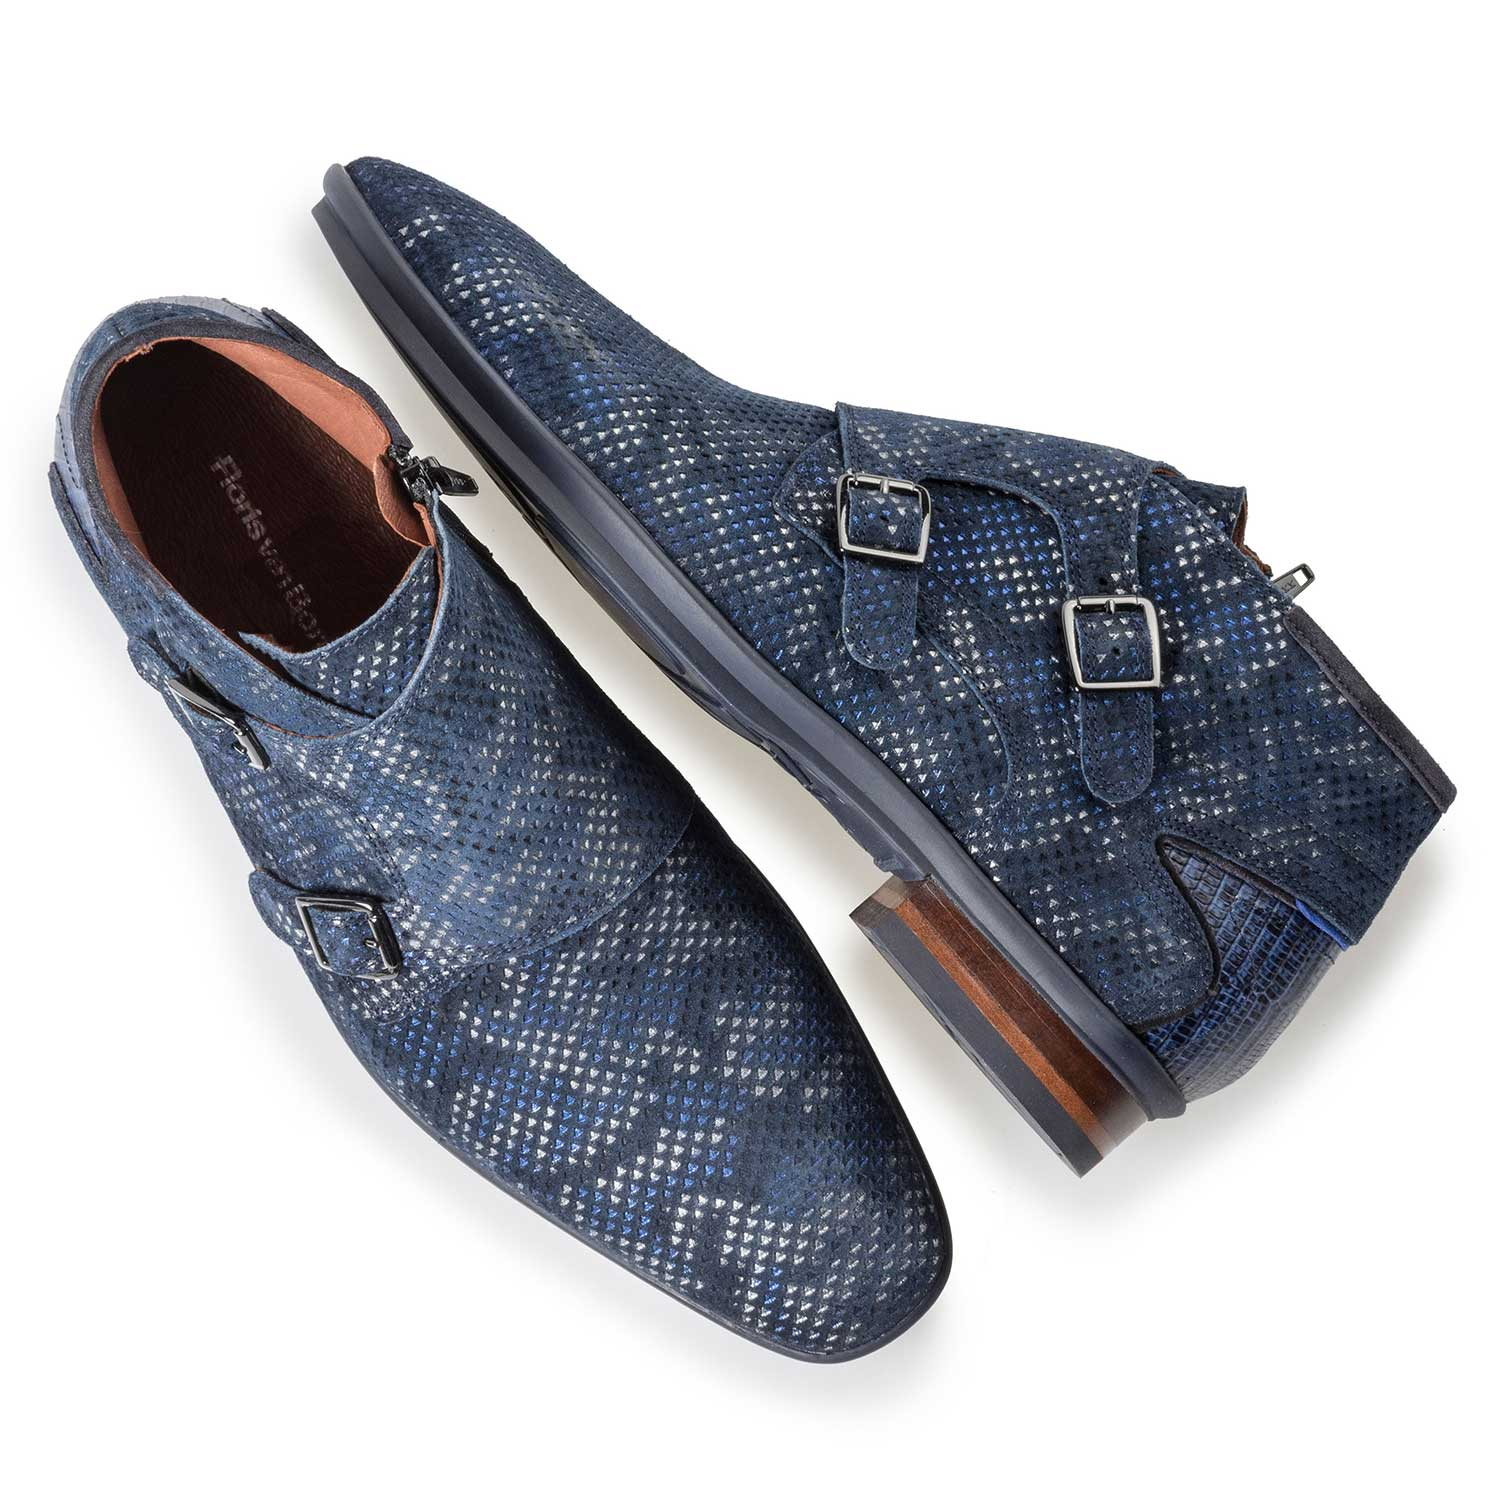 10137/03 - Mid-high patterned buckled shoe